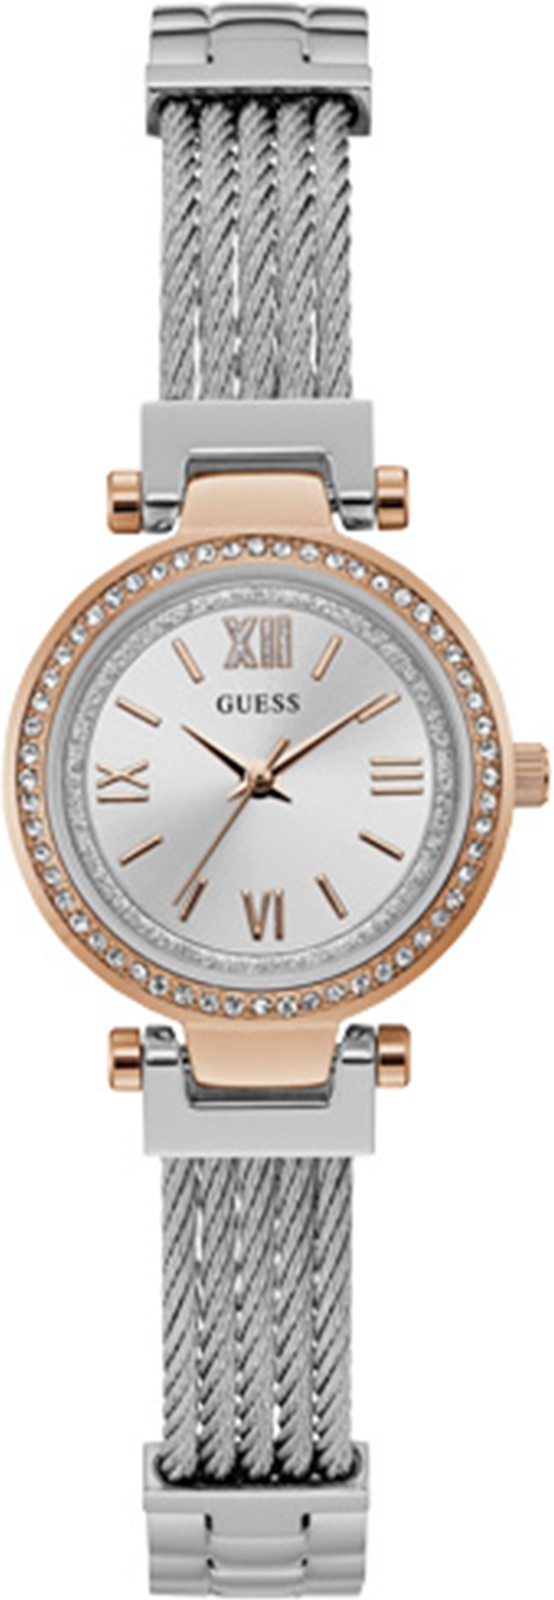 Часы Guess MINI SOHO все цены